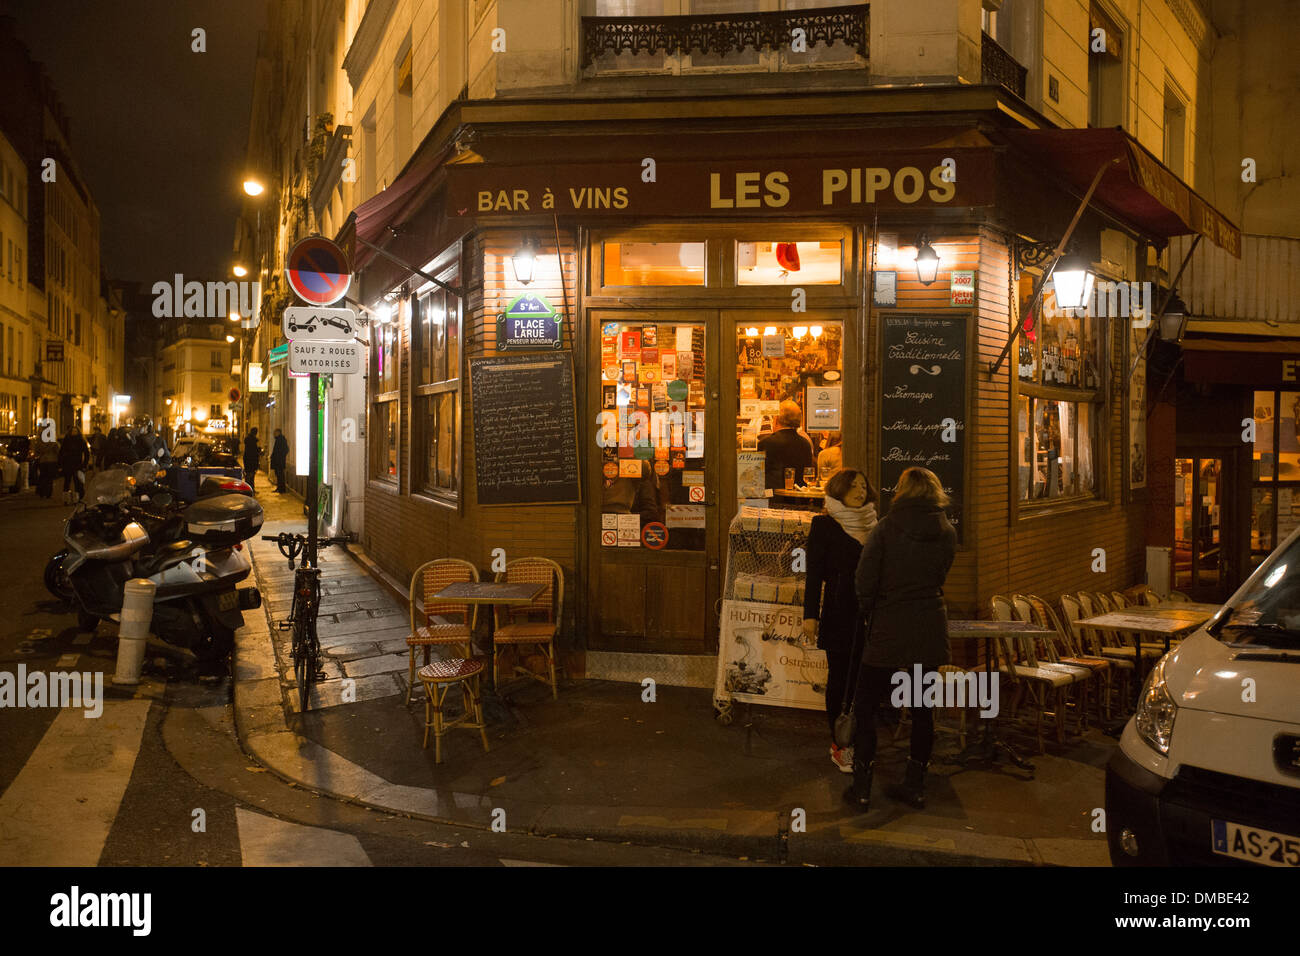 les pipos wine bar in place larue in paris france stock photo 64176786 alamy. Black Bedroom Furniture Sets. Home Design Ideas